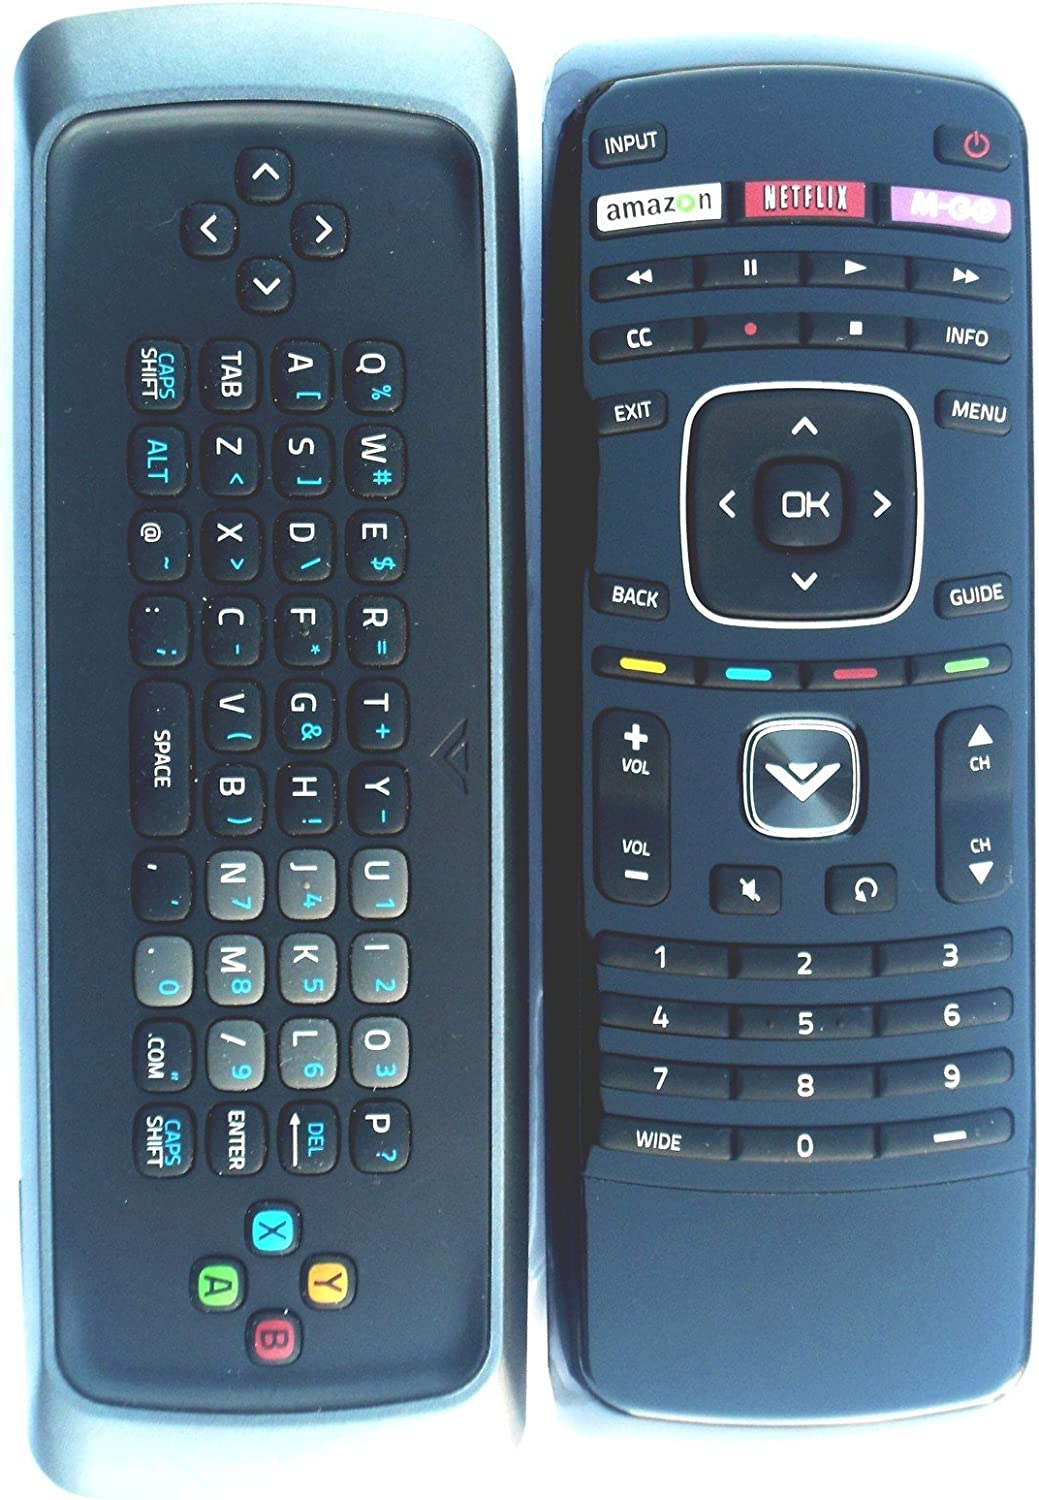 New Dual Side Keyboard Internet Remote-for Vizio M420sl M470sl M550sl E701i-a3 601i-a3